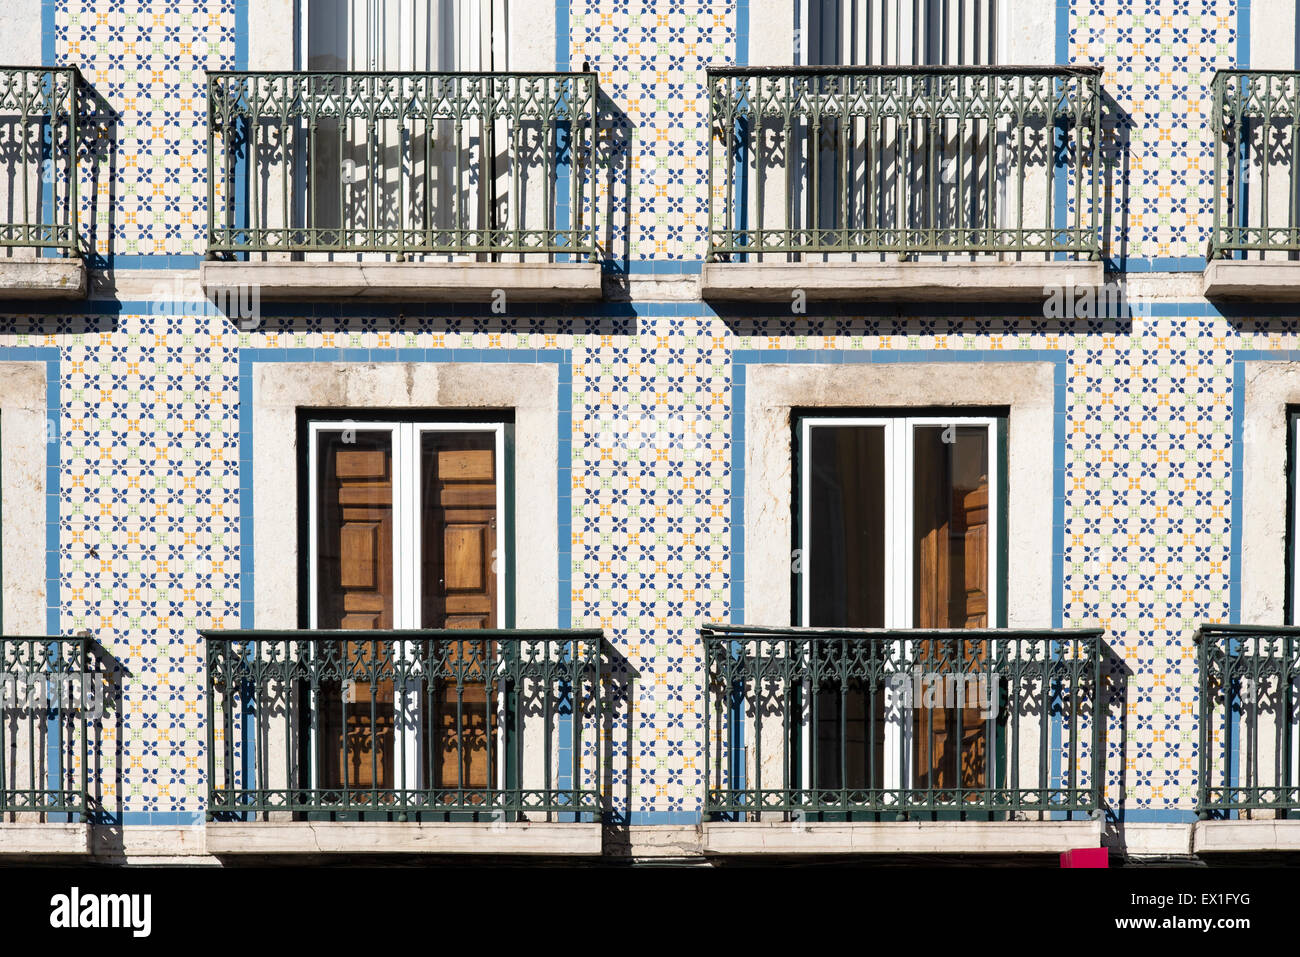 Building Facade With Ceramic Tiles Typical Of Lisbon